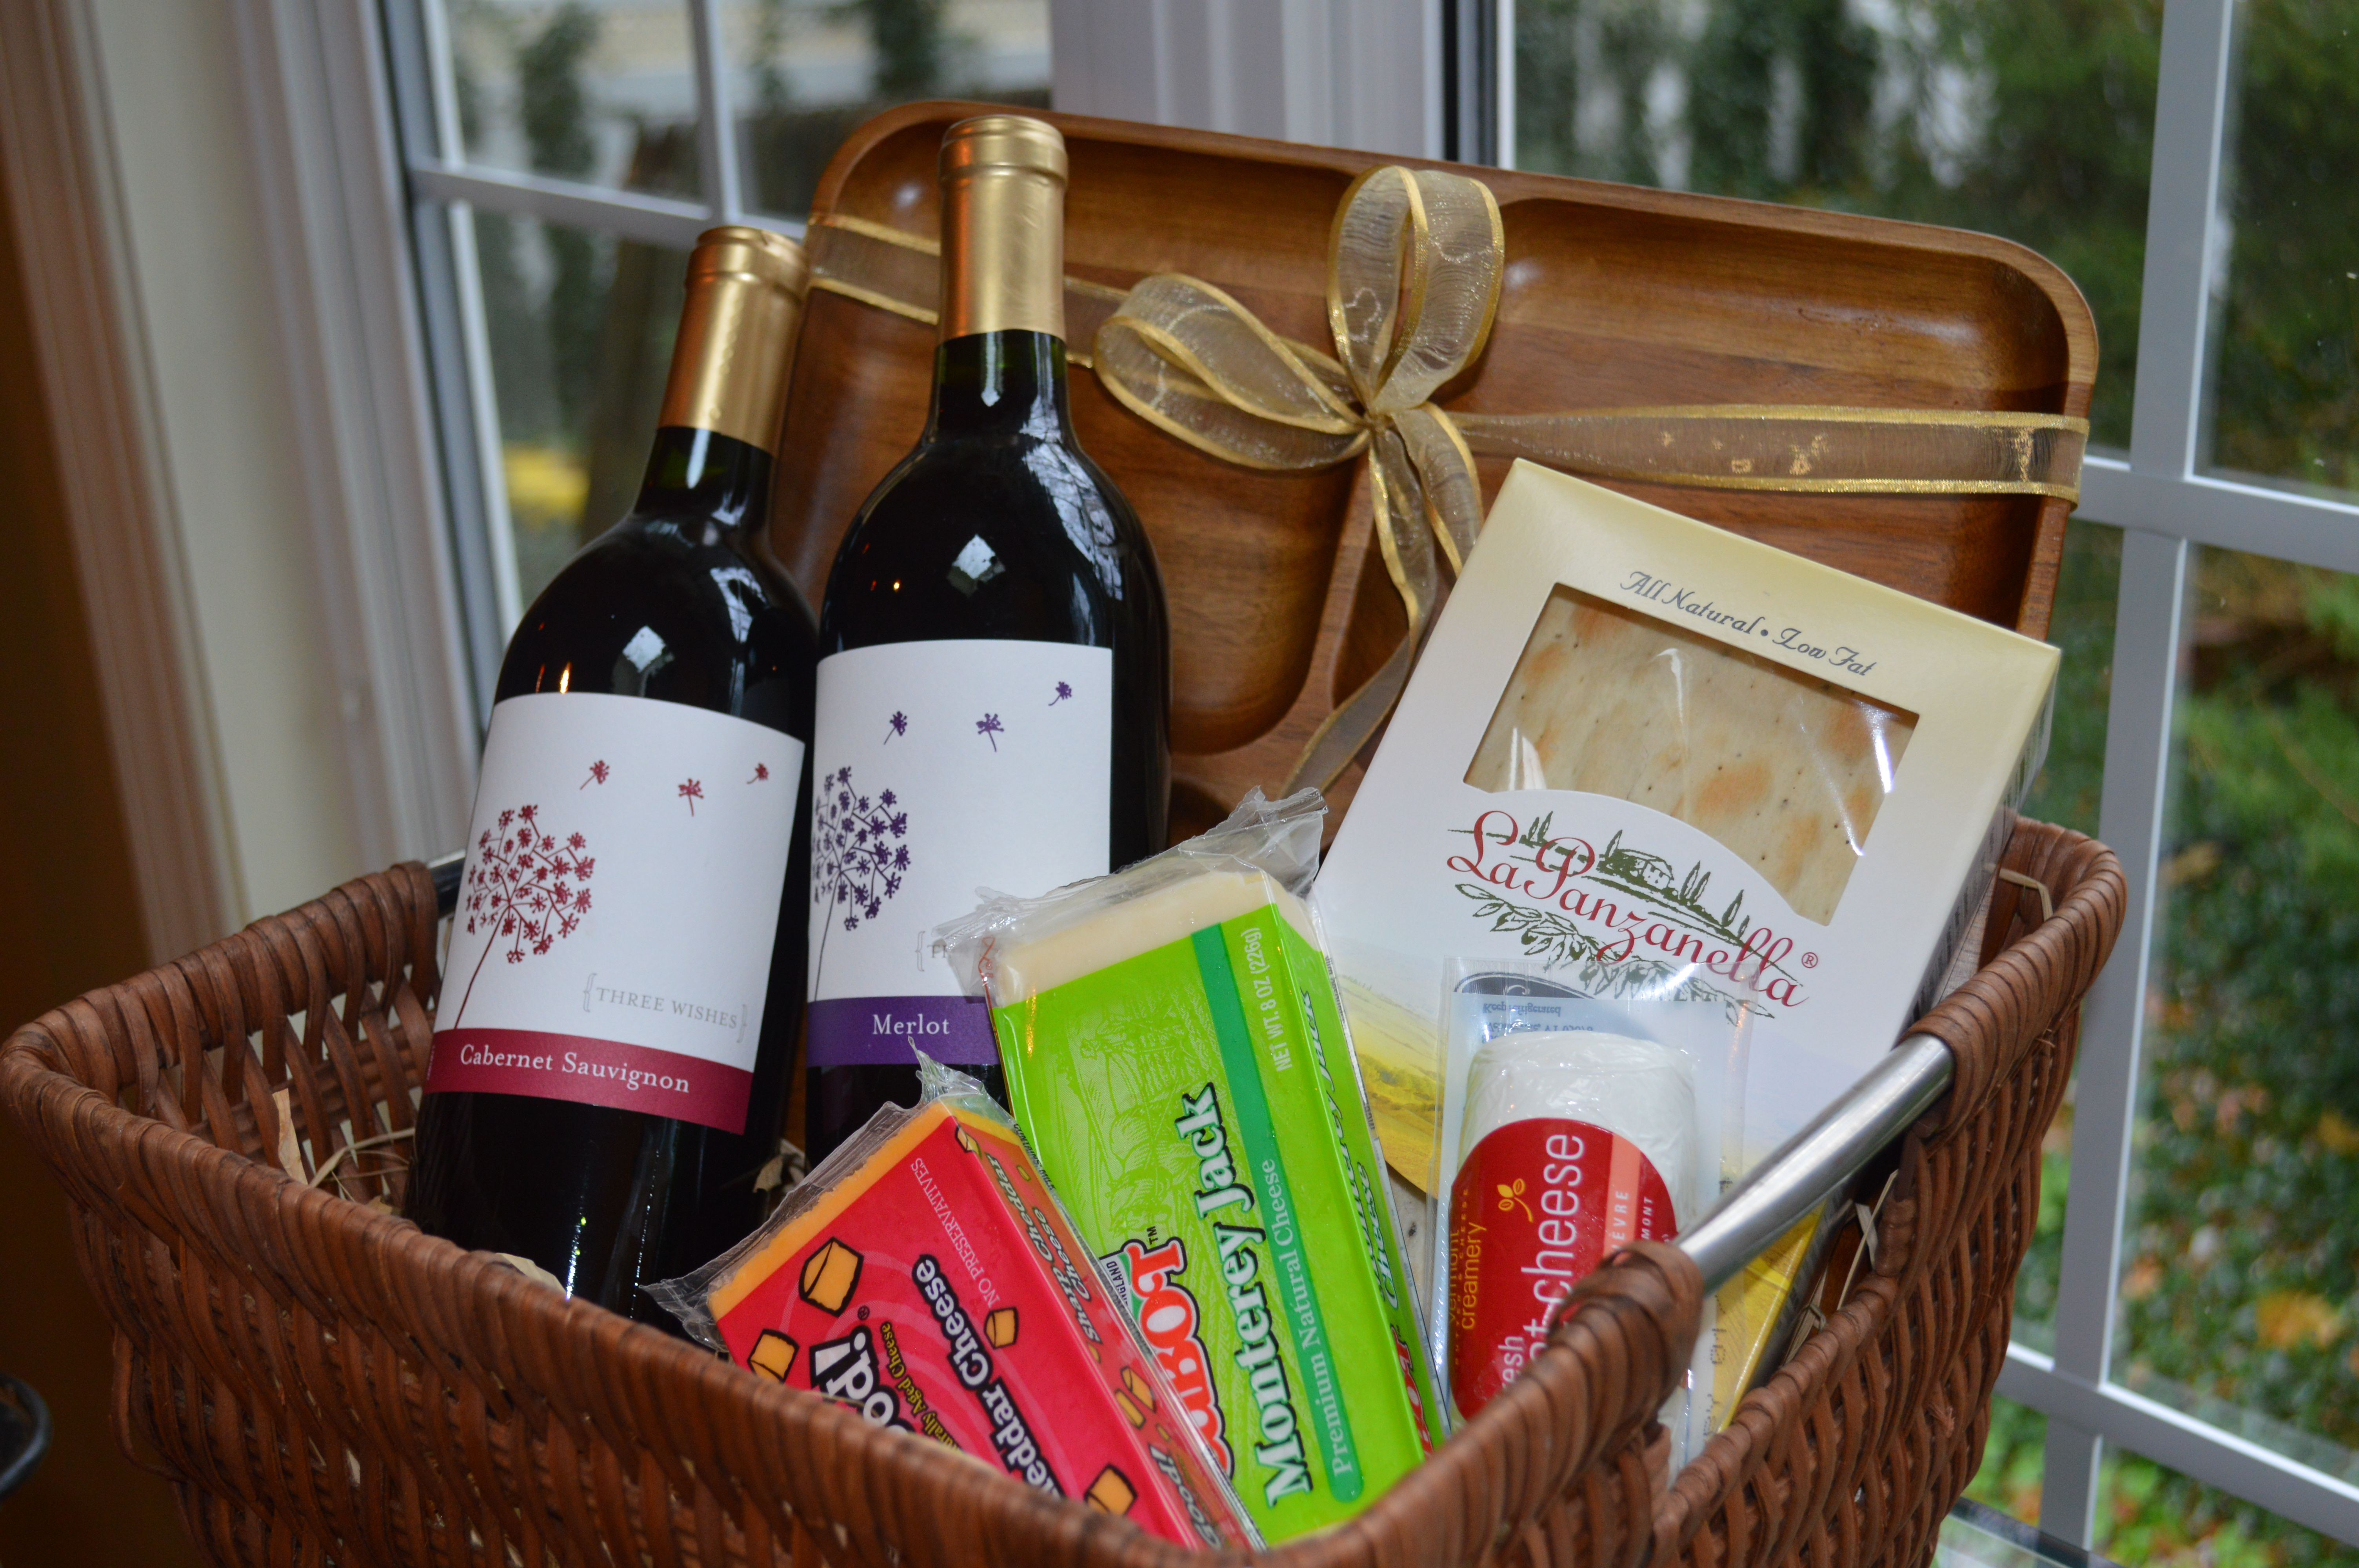 Diy holiday food gifts sisters soiree homemade wine cheese basket thesisterssoiree solutioingenieria Choice Image